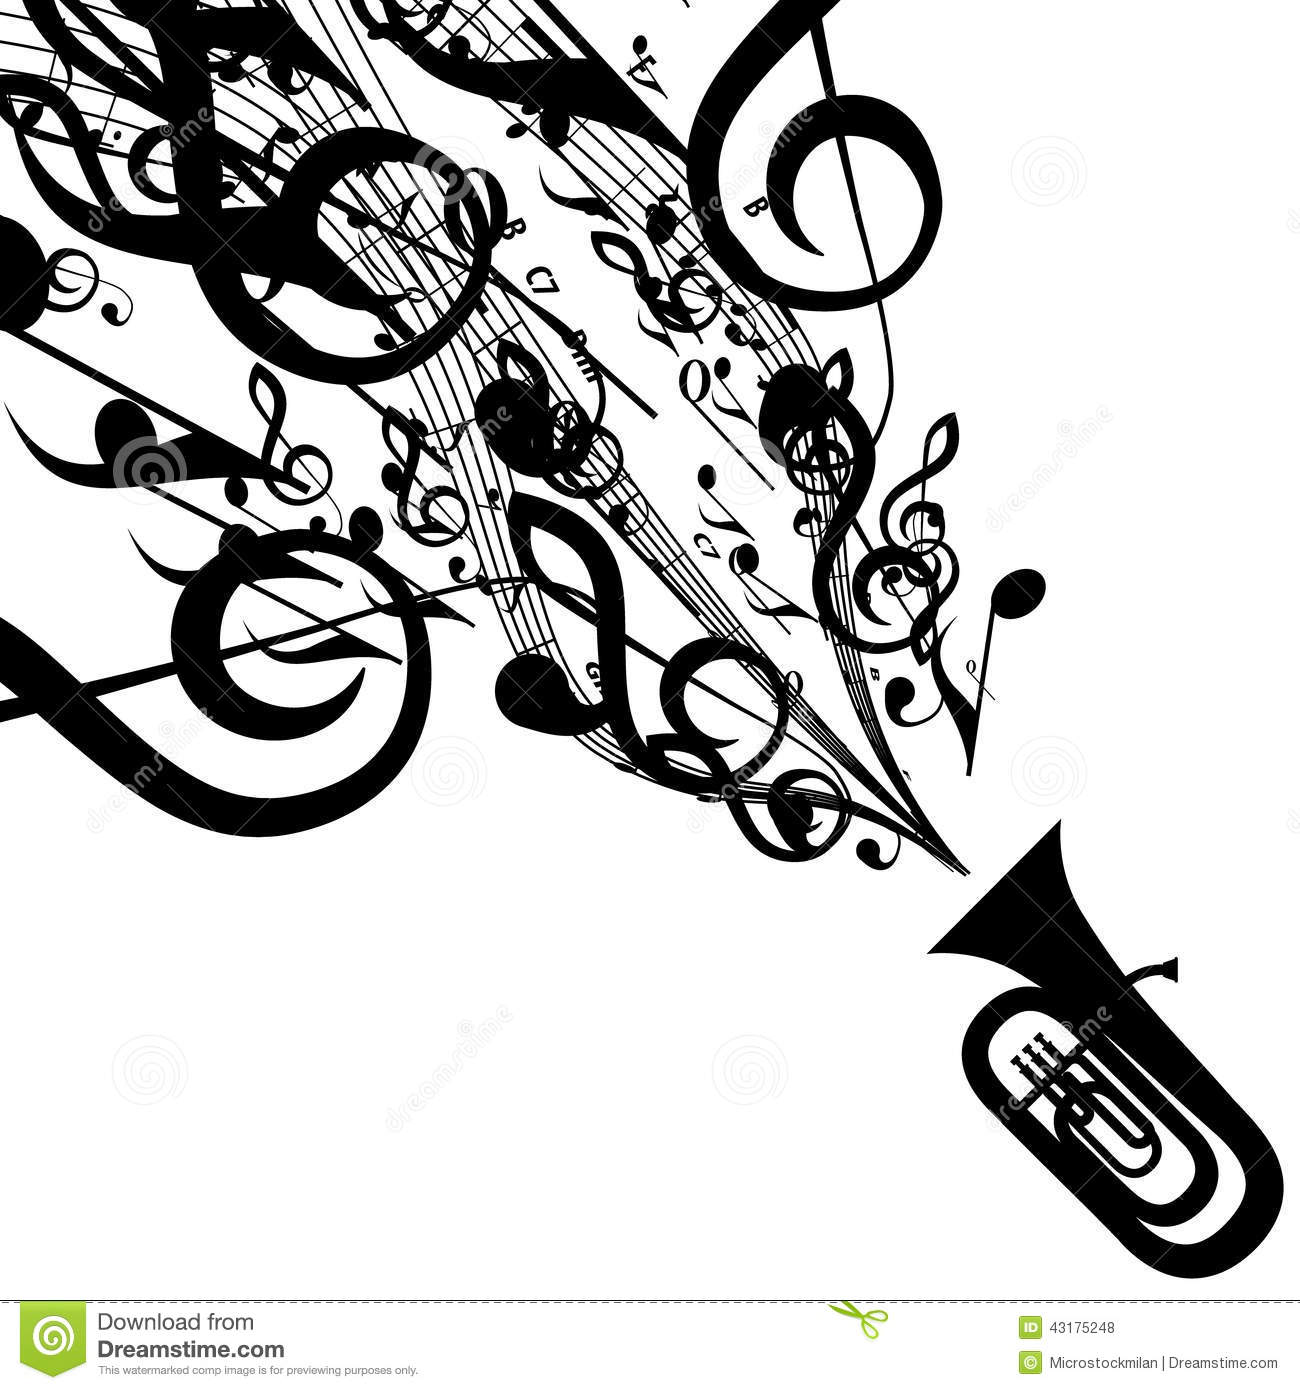 Image Result For Royalty Free Music Download Free Mp